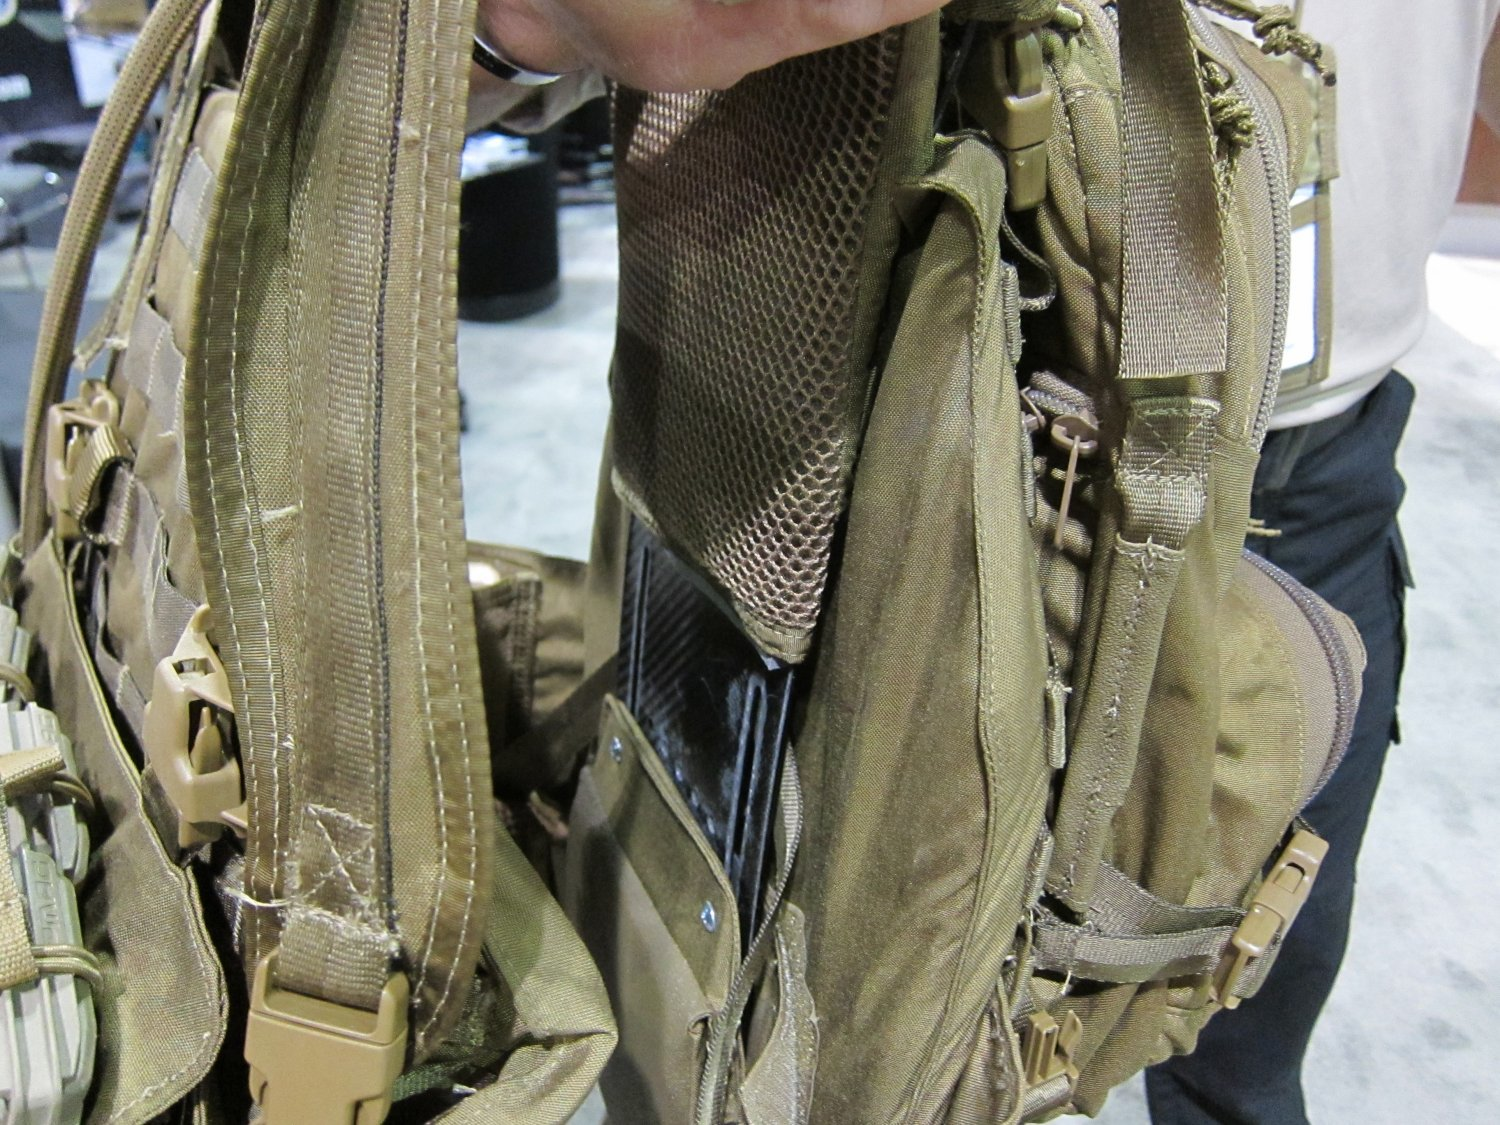 Archangel Armor Internal Frame Load Bearing System IFLBS Version 5 Tactical Armor Plate Carrier System SOFIC 2011 5 <!  :en  >Archangel Armor Internal Frame Load Bearing System (IFLBS) Version 5 Tactical Armor Plate Carrier/Tactical Vest System: Lighten your load when youre in combat mode!<!  :  >